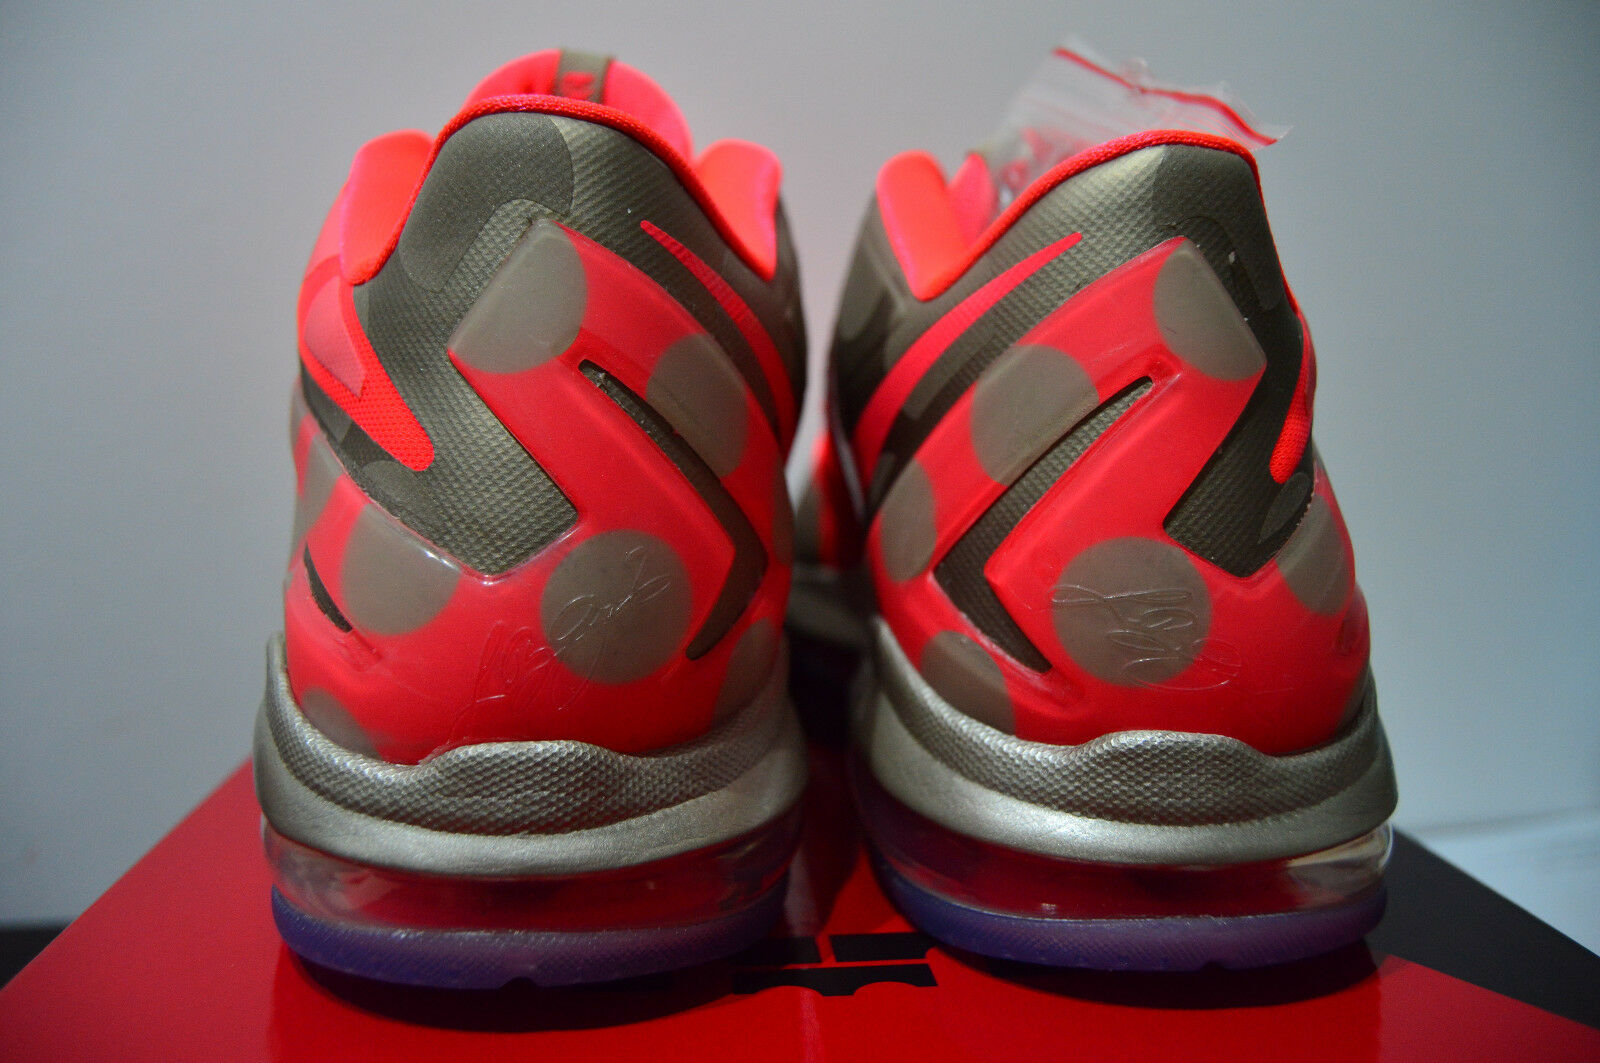 NIKE MAX LEBRON XI LOW LOW LOW COLLECTION 683256 064 METALLIC ZINC HYPER PUNCH-ICE US9.5 419f61